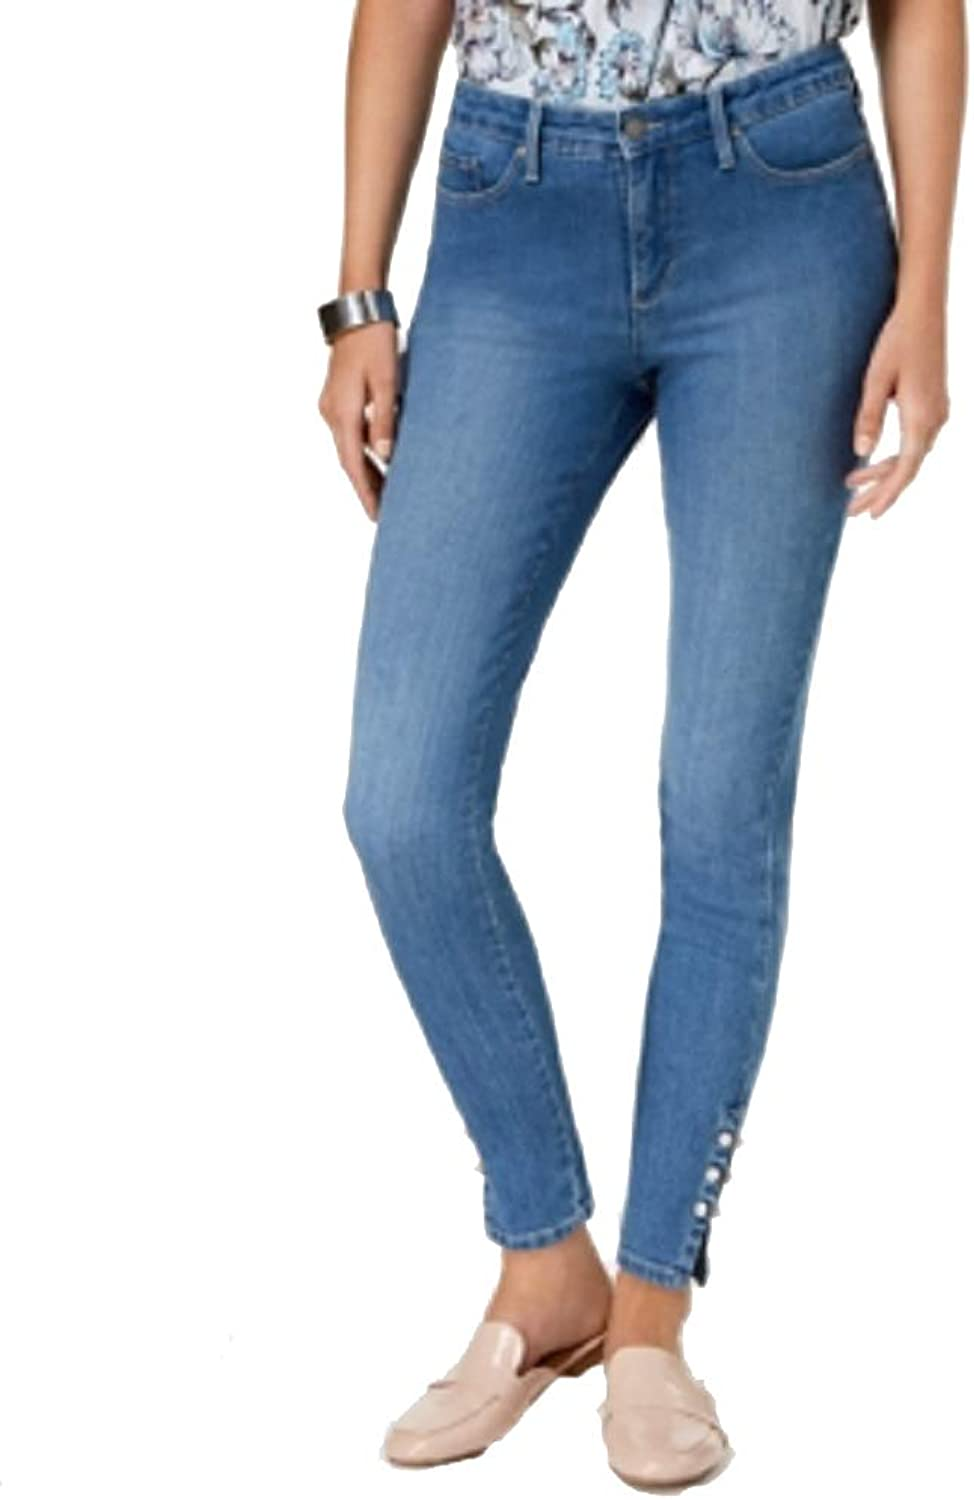 Charter Club FauxPearlEmbellished Skinny Jeans